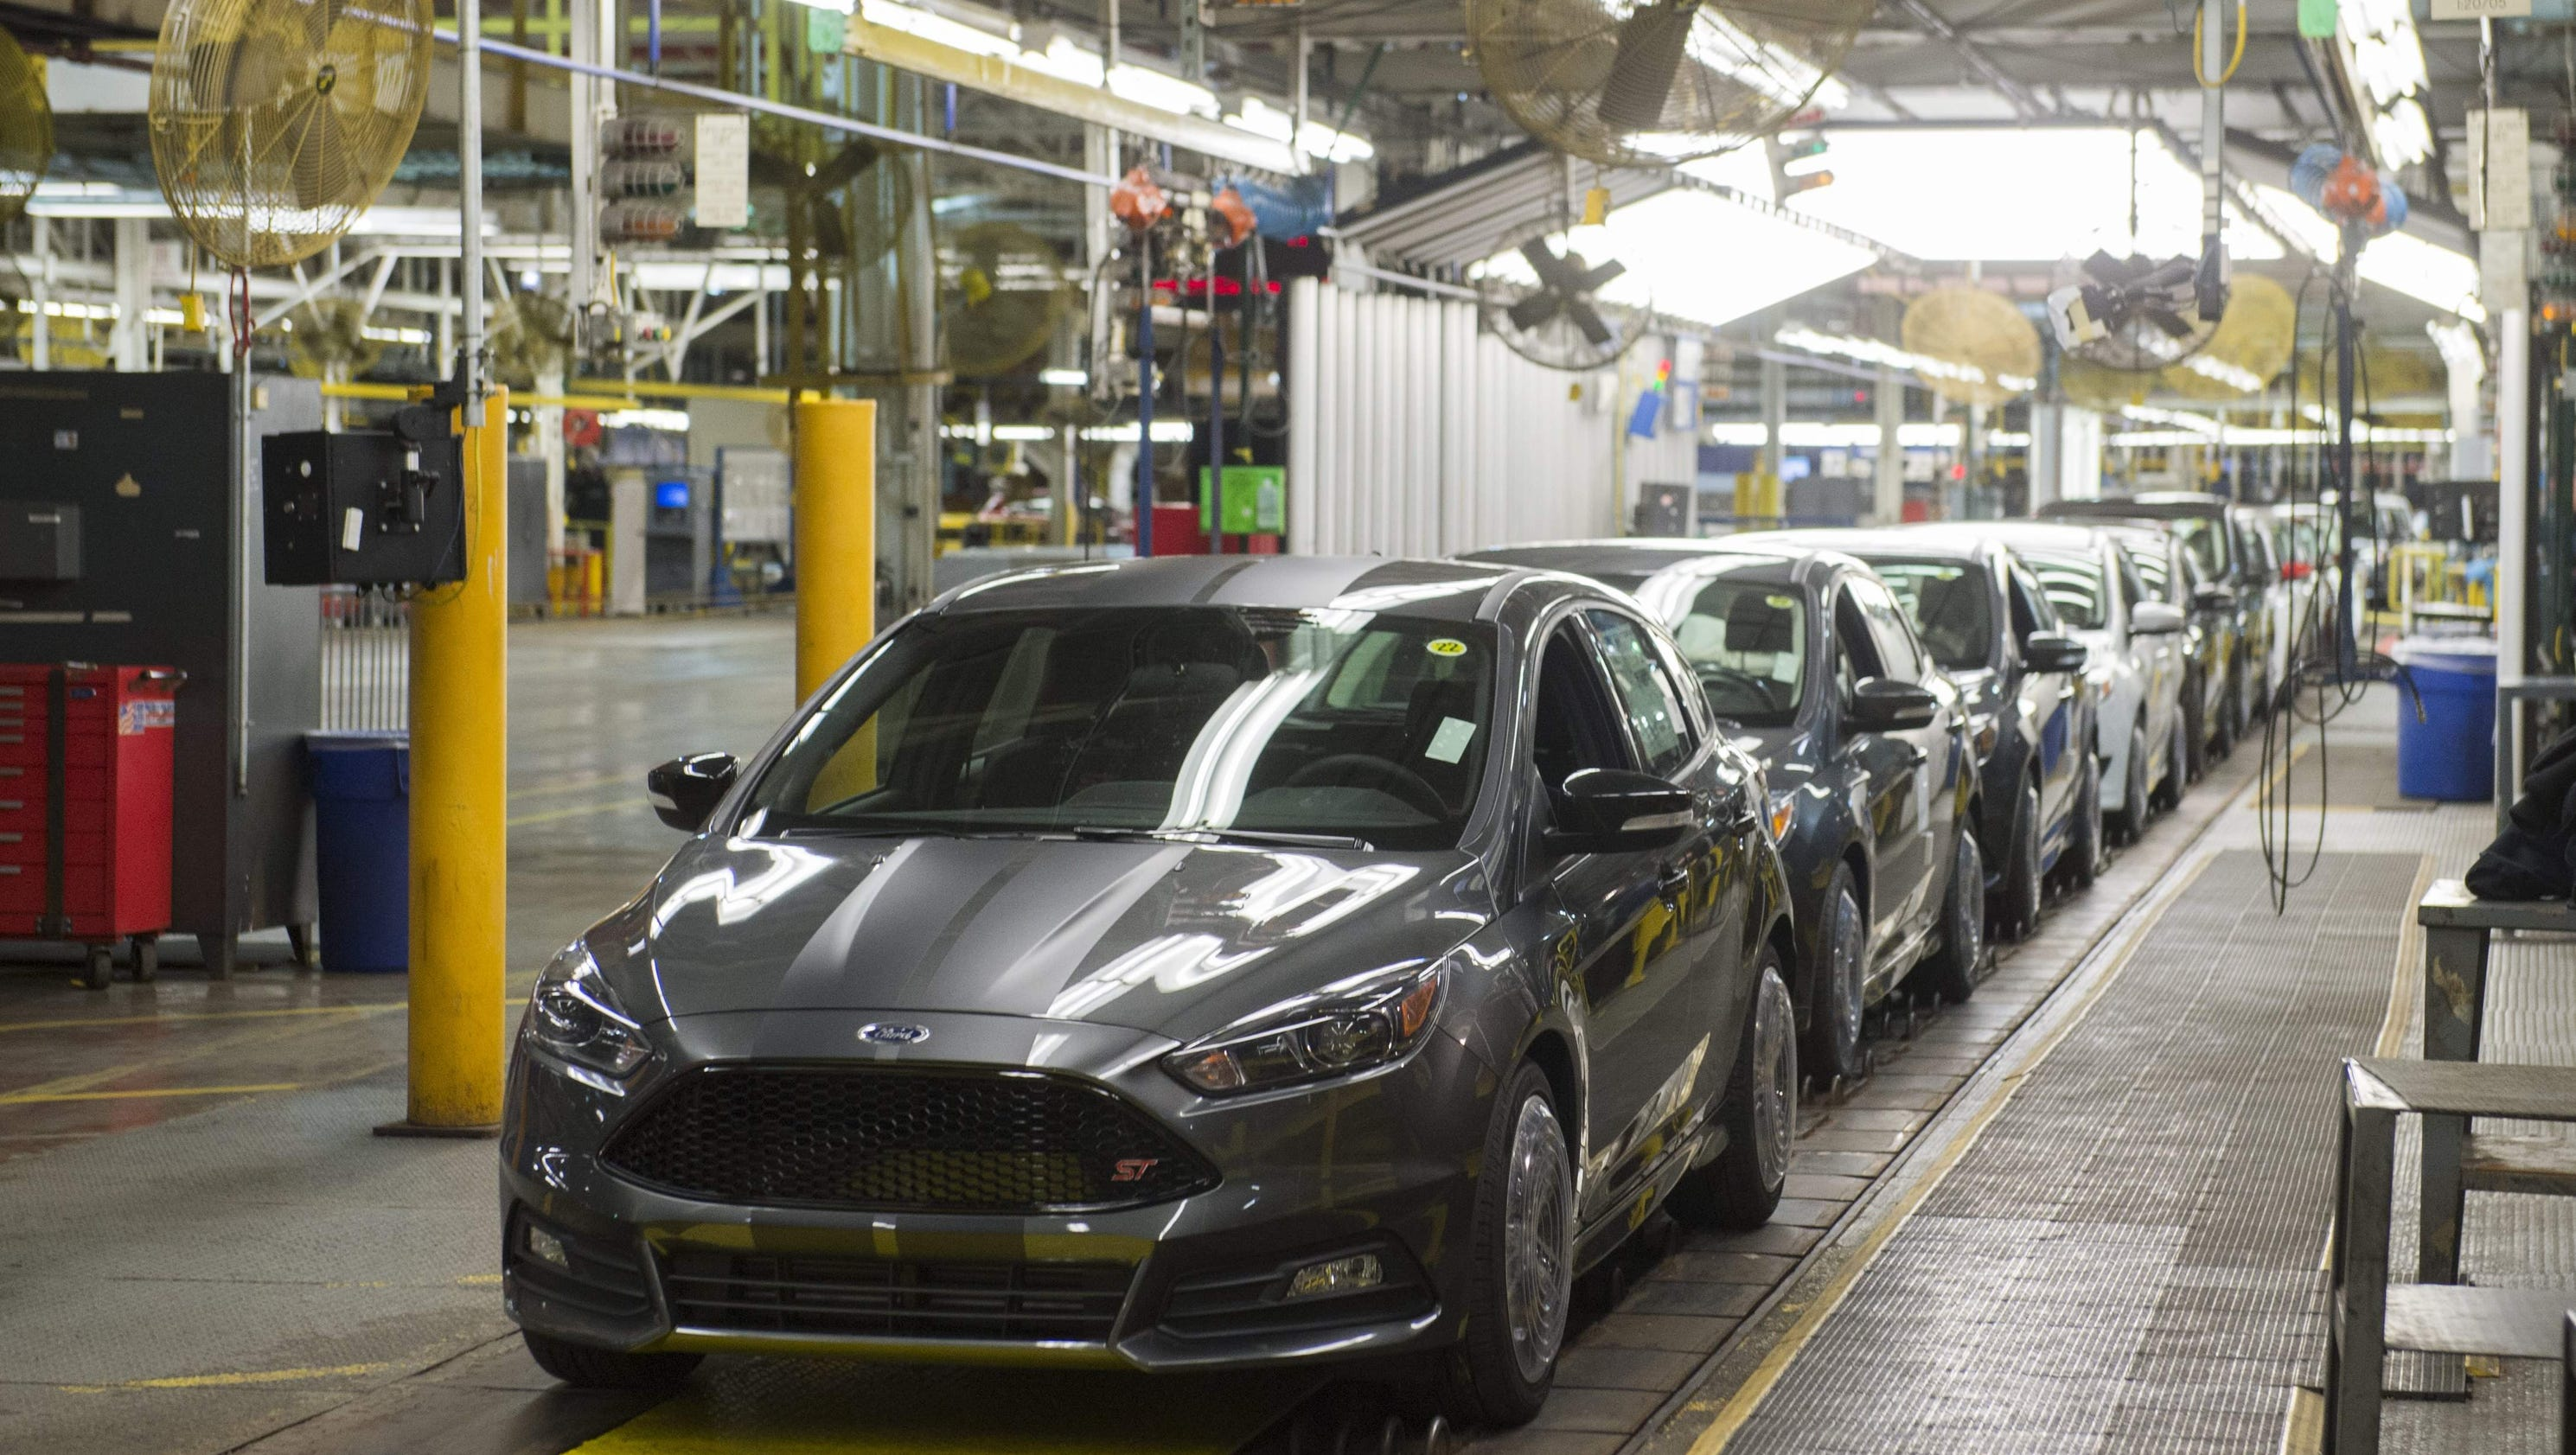 Ford Moving All Production Of Small Cars From U.S. To Mexico